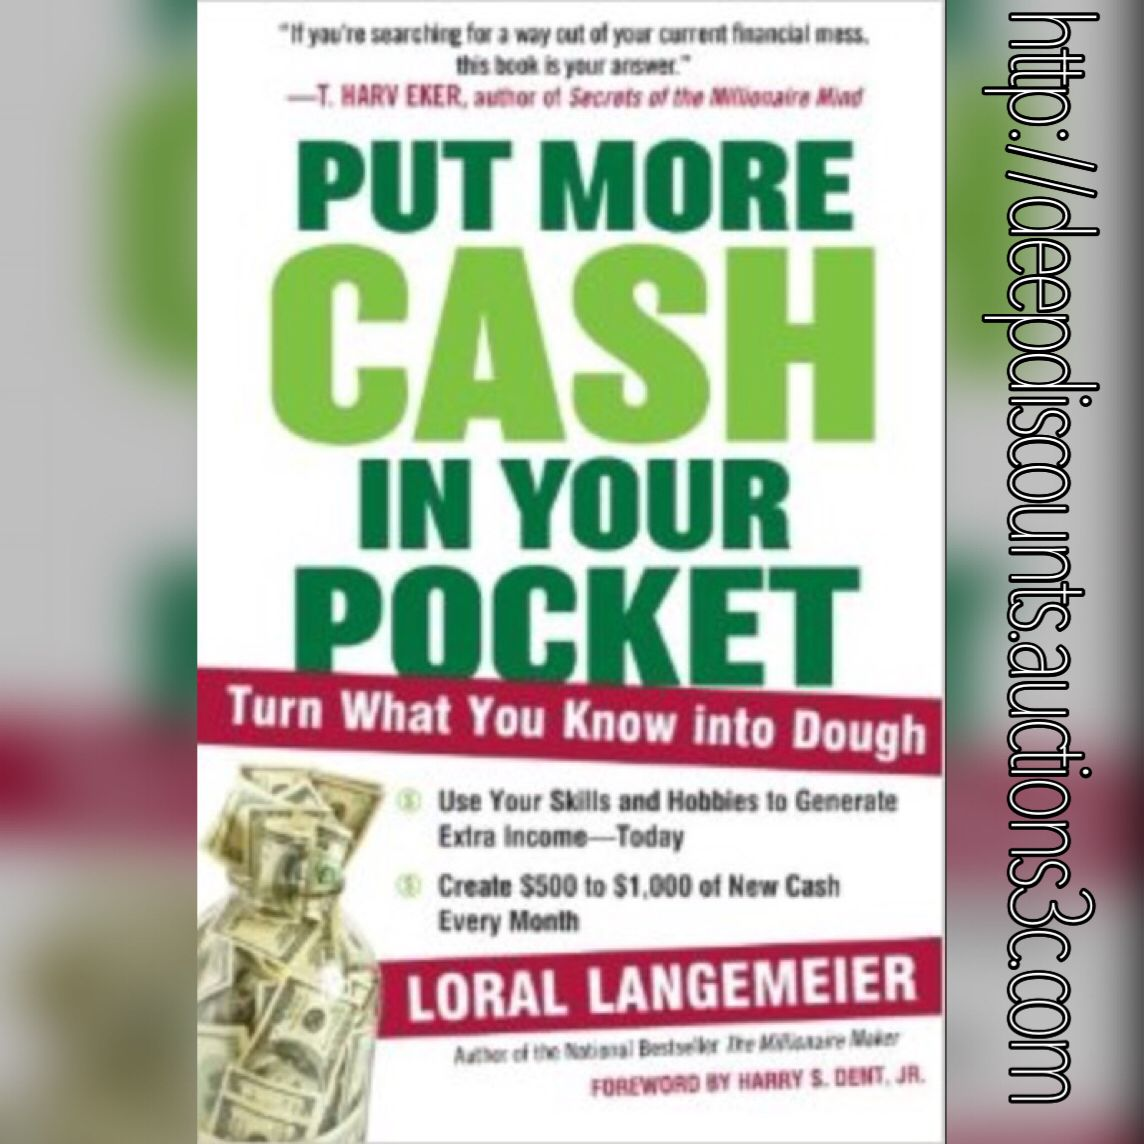 Put More Cash in Your Pocket, by Loral Langemeier $11.99 You save 23% off the regular price of $15.58  In this incredibly timely book for a moment when everyone is looking to make a little extra dough, highly sought-after money management expert and speaker Loral Langemeir empowers readers to stop saving, stop sacrificing, and start making money by charging for what they already do.  More details at www.crystalsblogworld.com